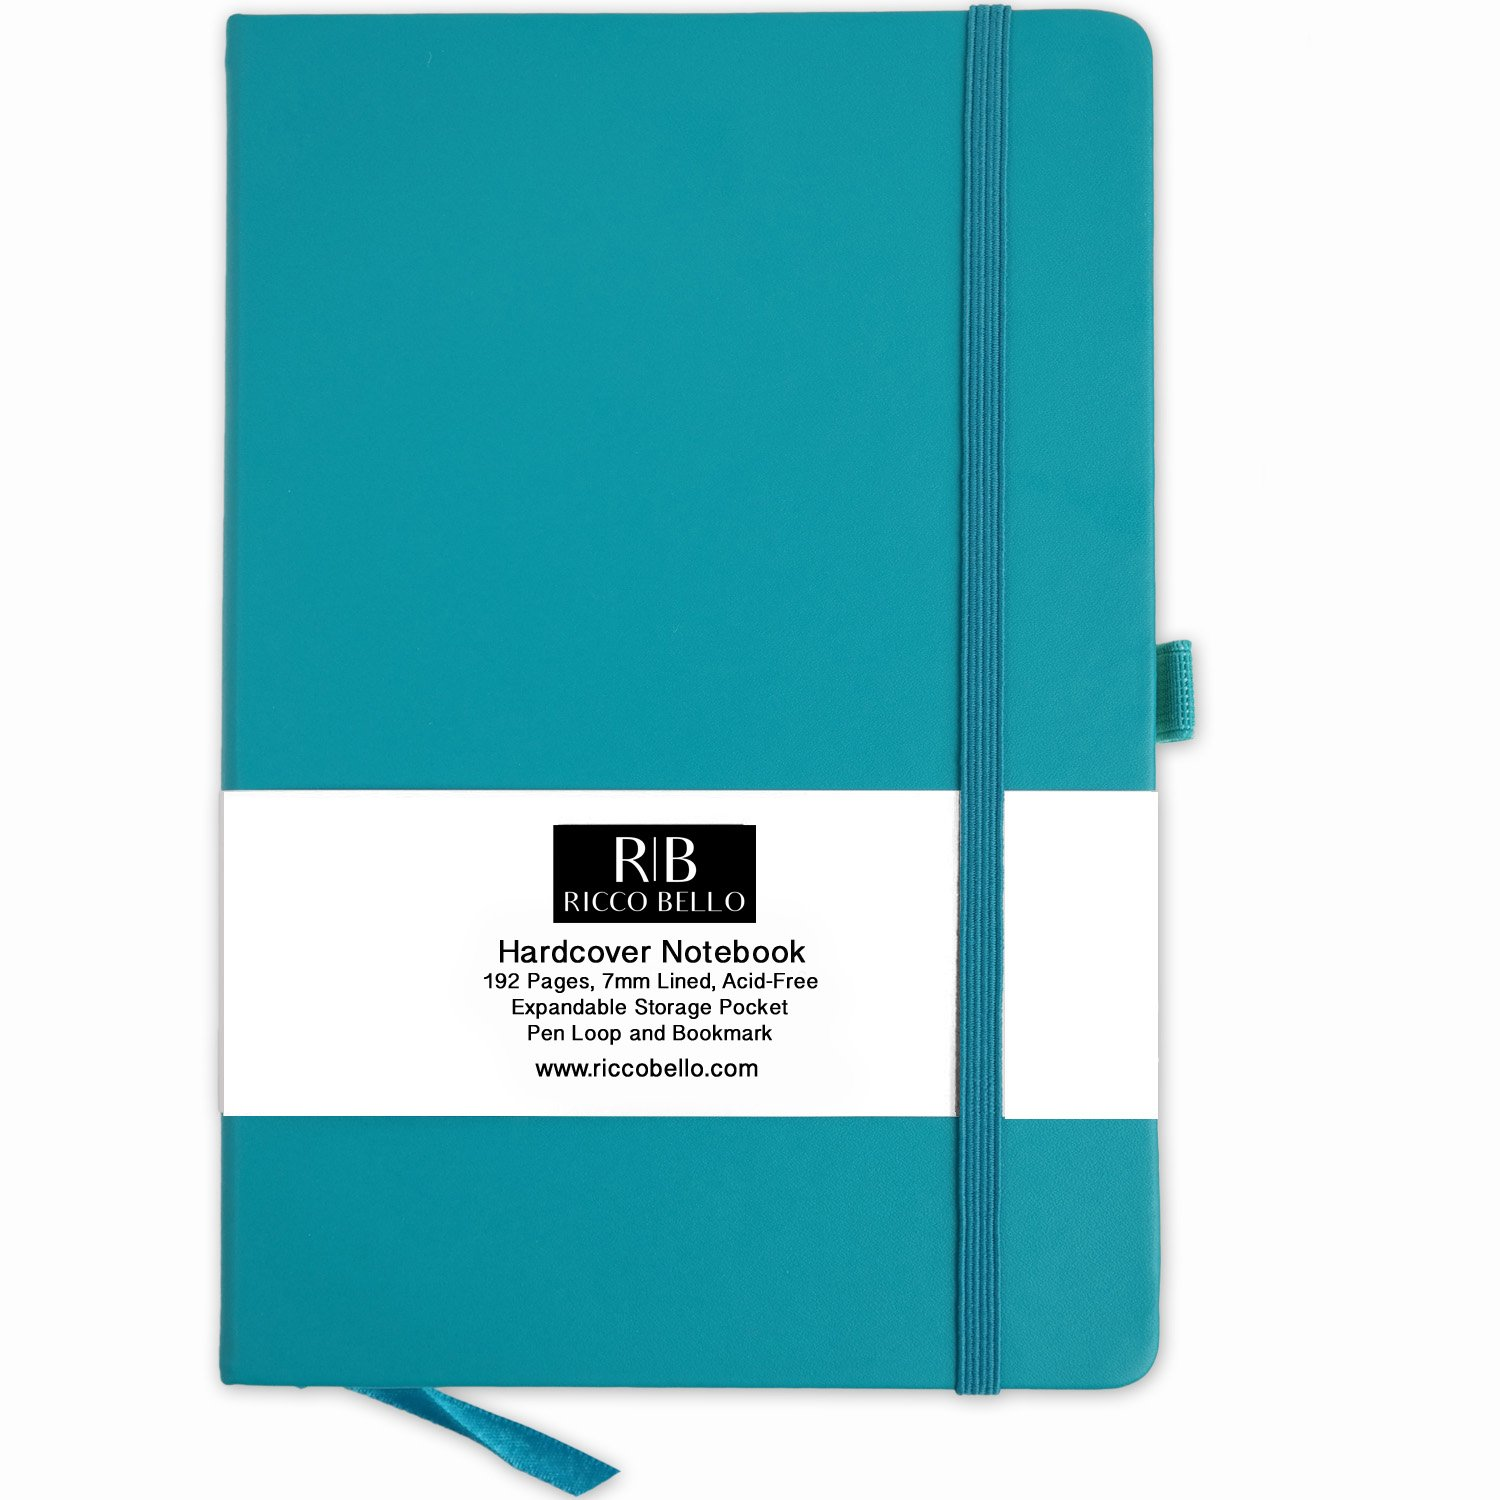 RICCO BELLO Classic Ruled Notebook with Pen Loop / 5.7 x 8.4 inches (Teal)